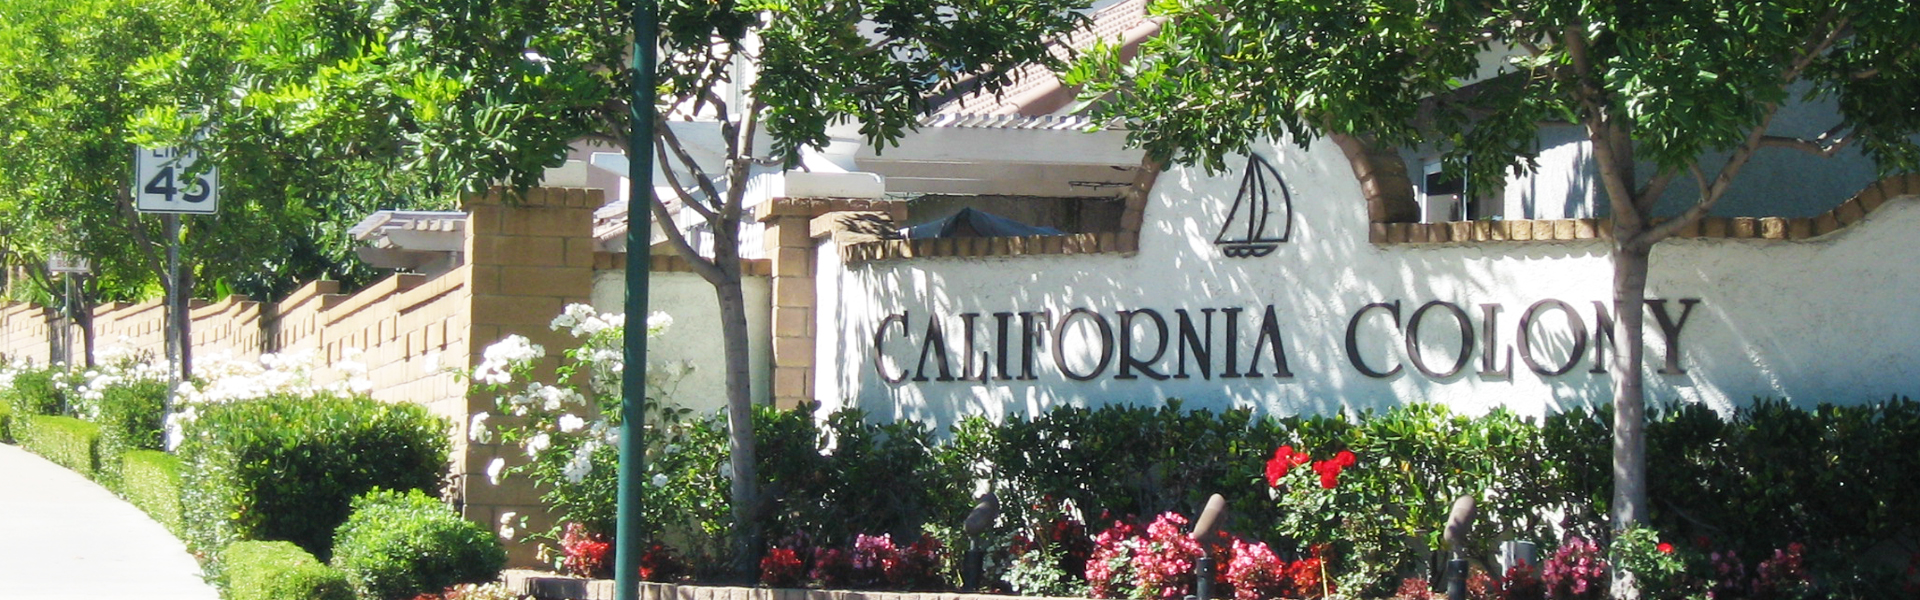 Welcome to California Colony's Community Website!